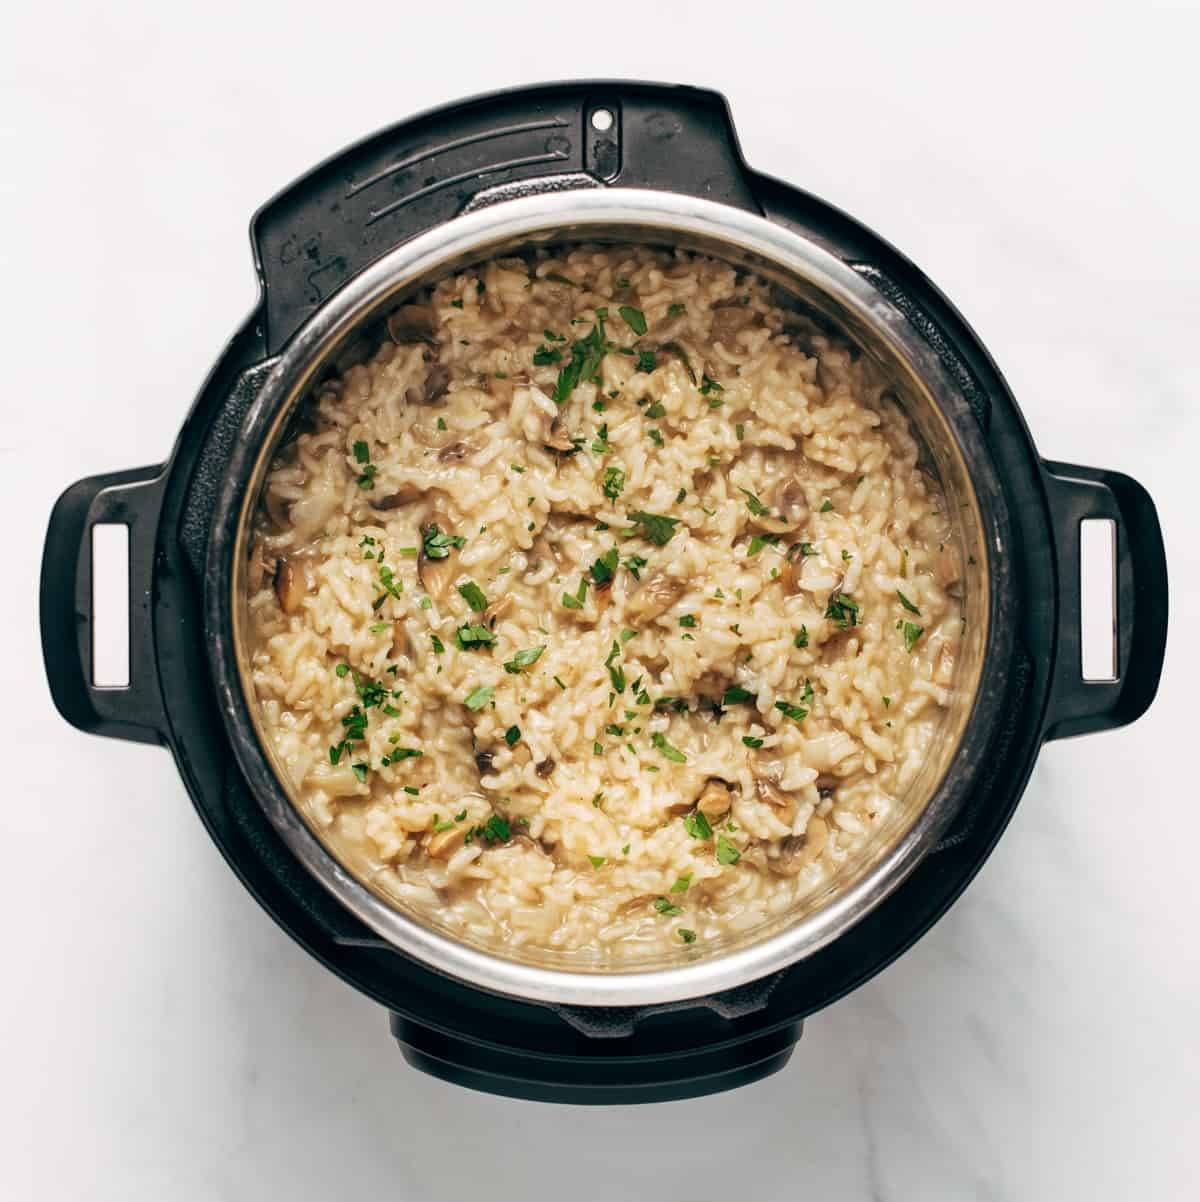 Cooked risotto in the instant pot